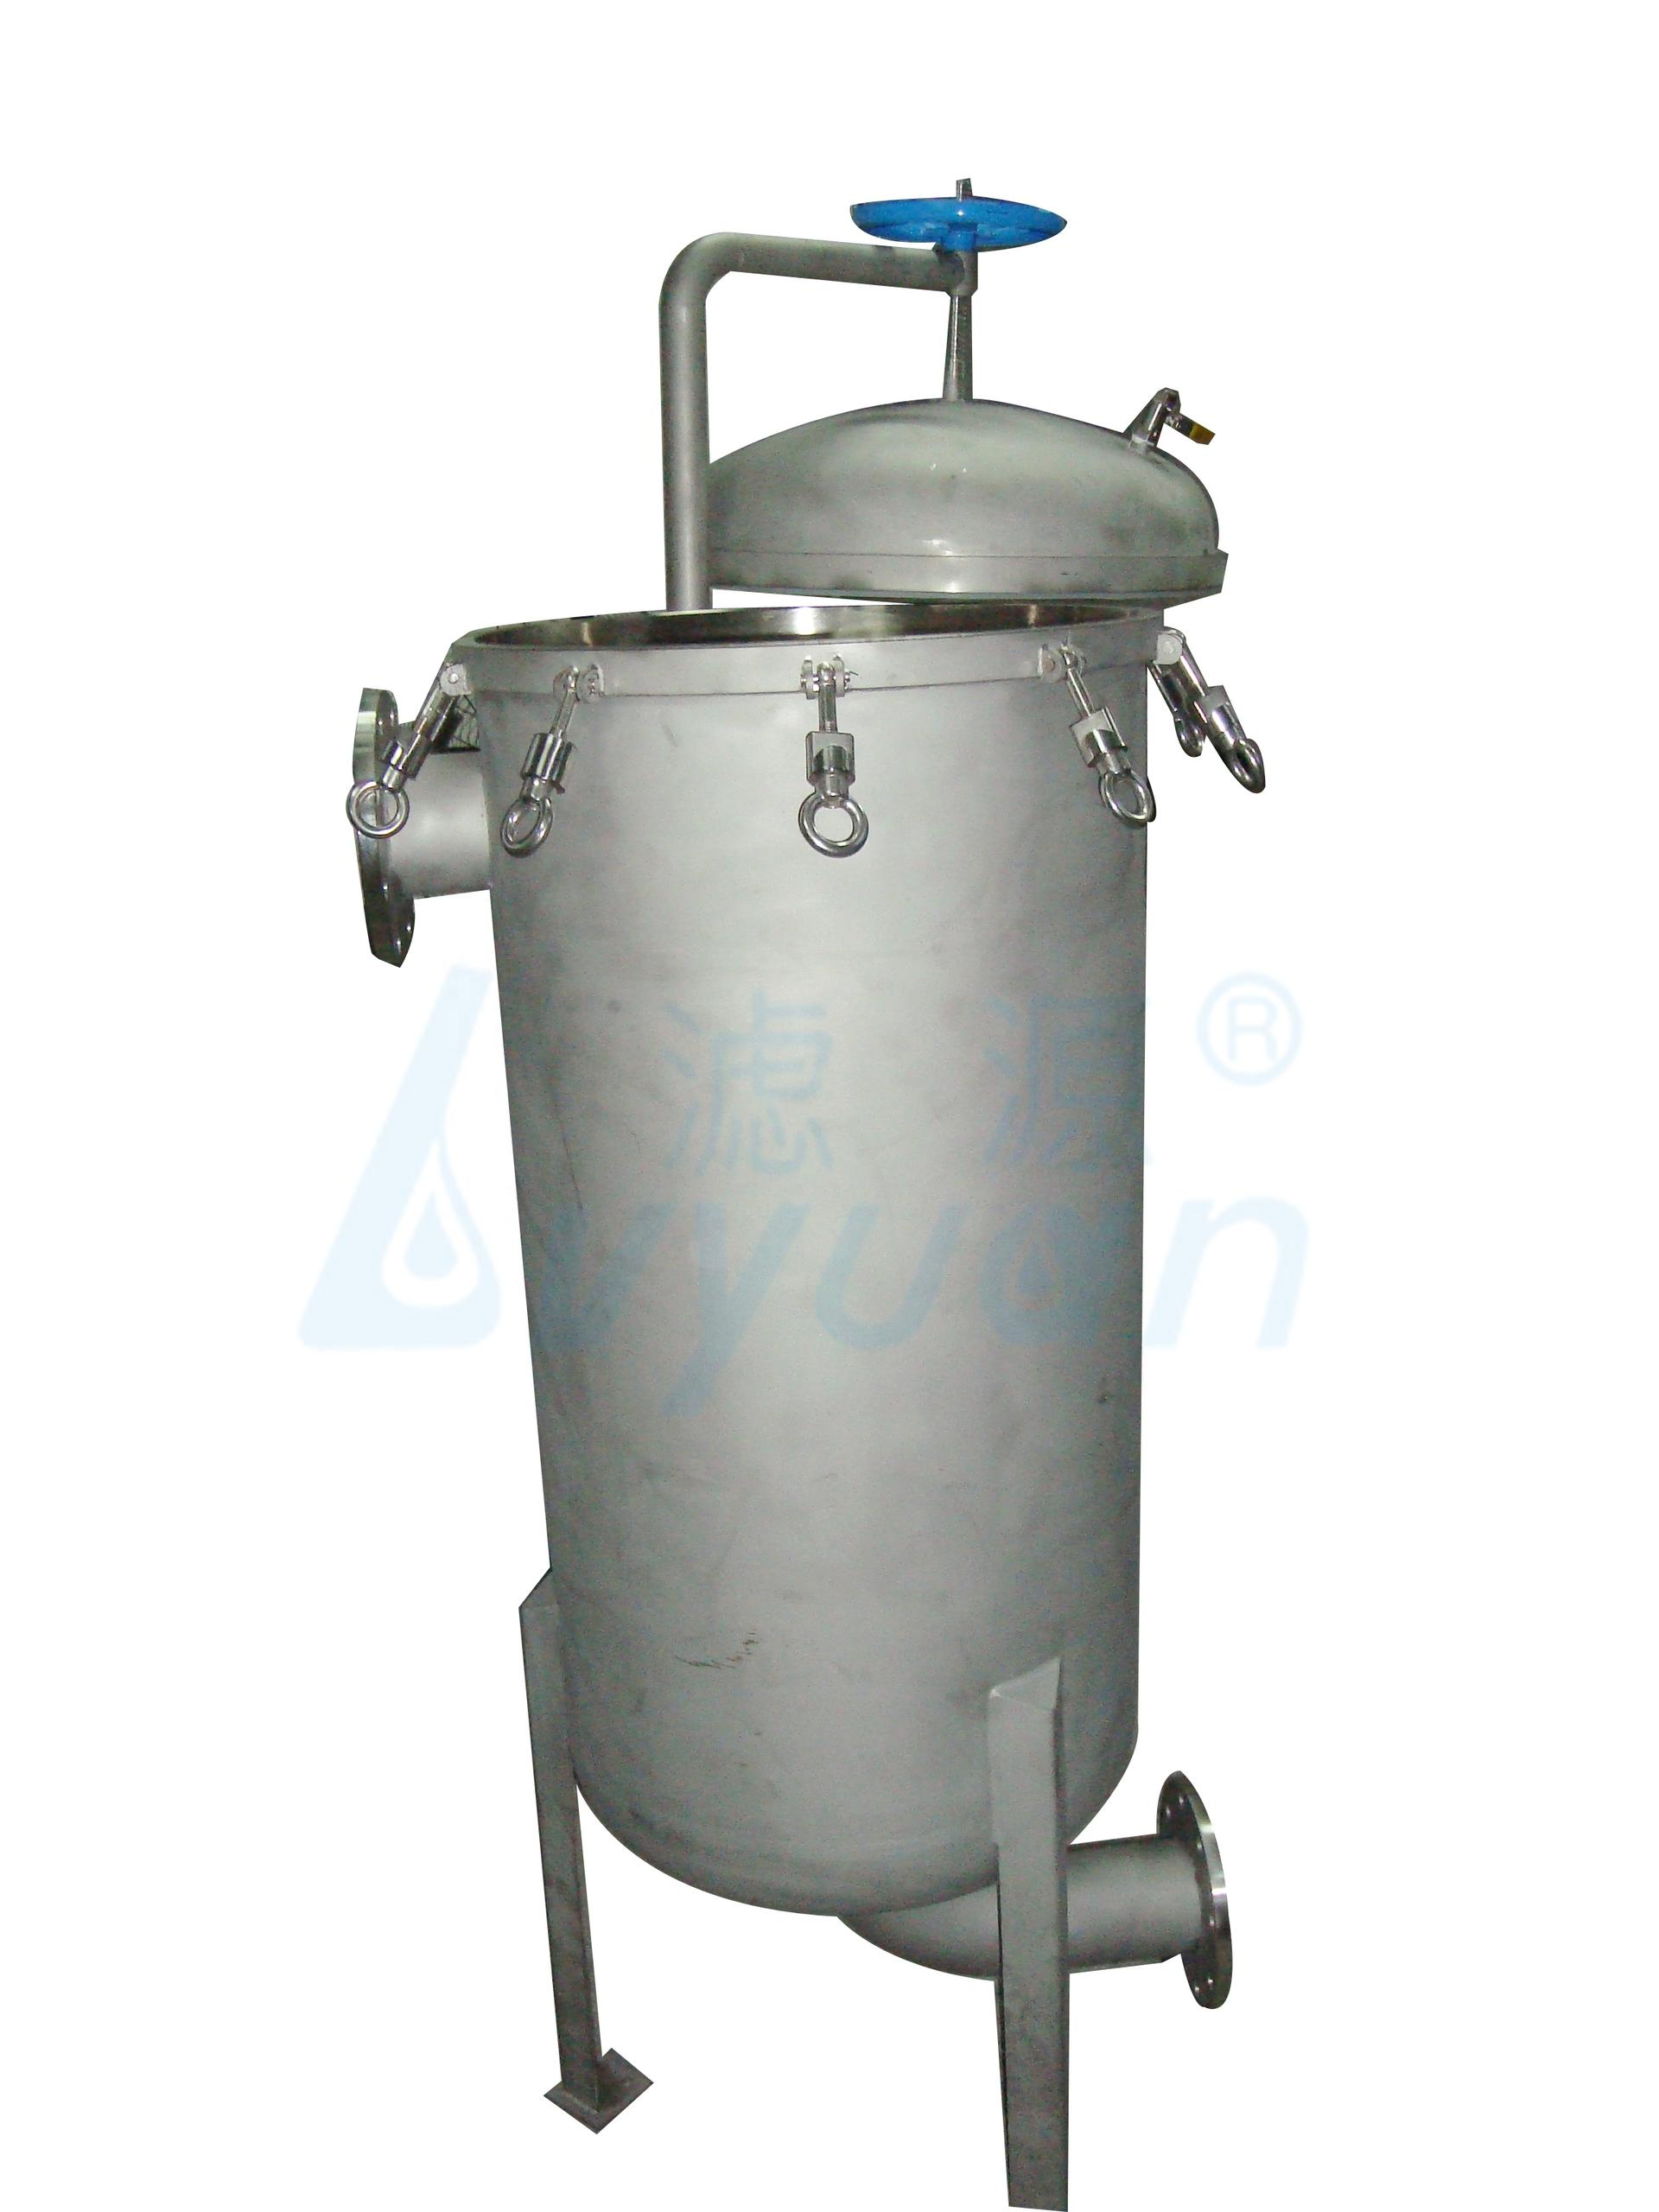 SS304 Multi Bag Filter Housing/stainless steel water filter housing for liquid filtration system